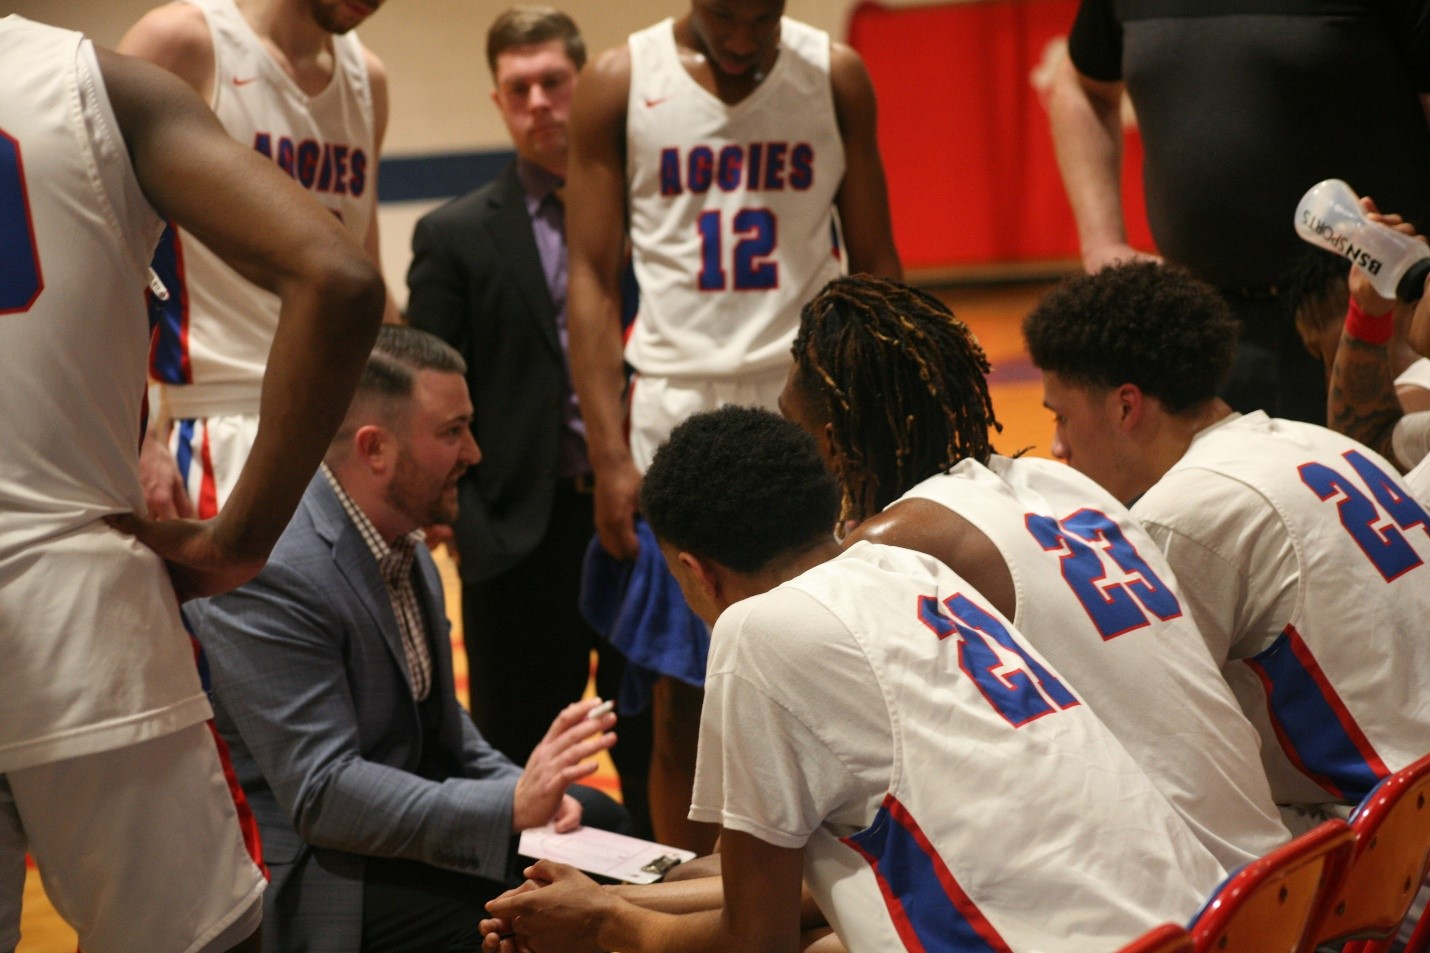 MSC's Kevin O'Connor named one of 50 impactful coaches in men's JUCO basketball